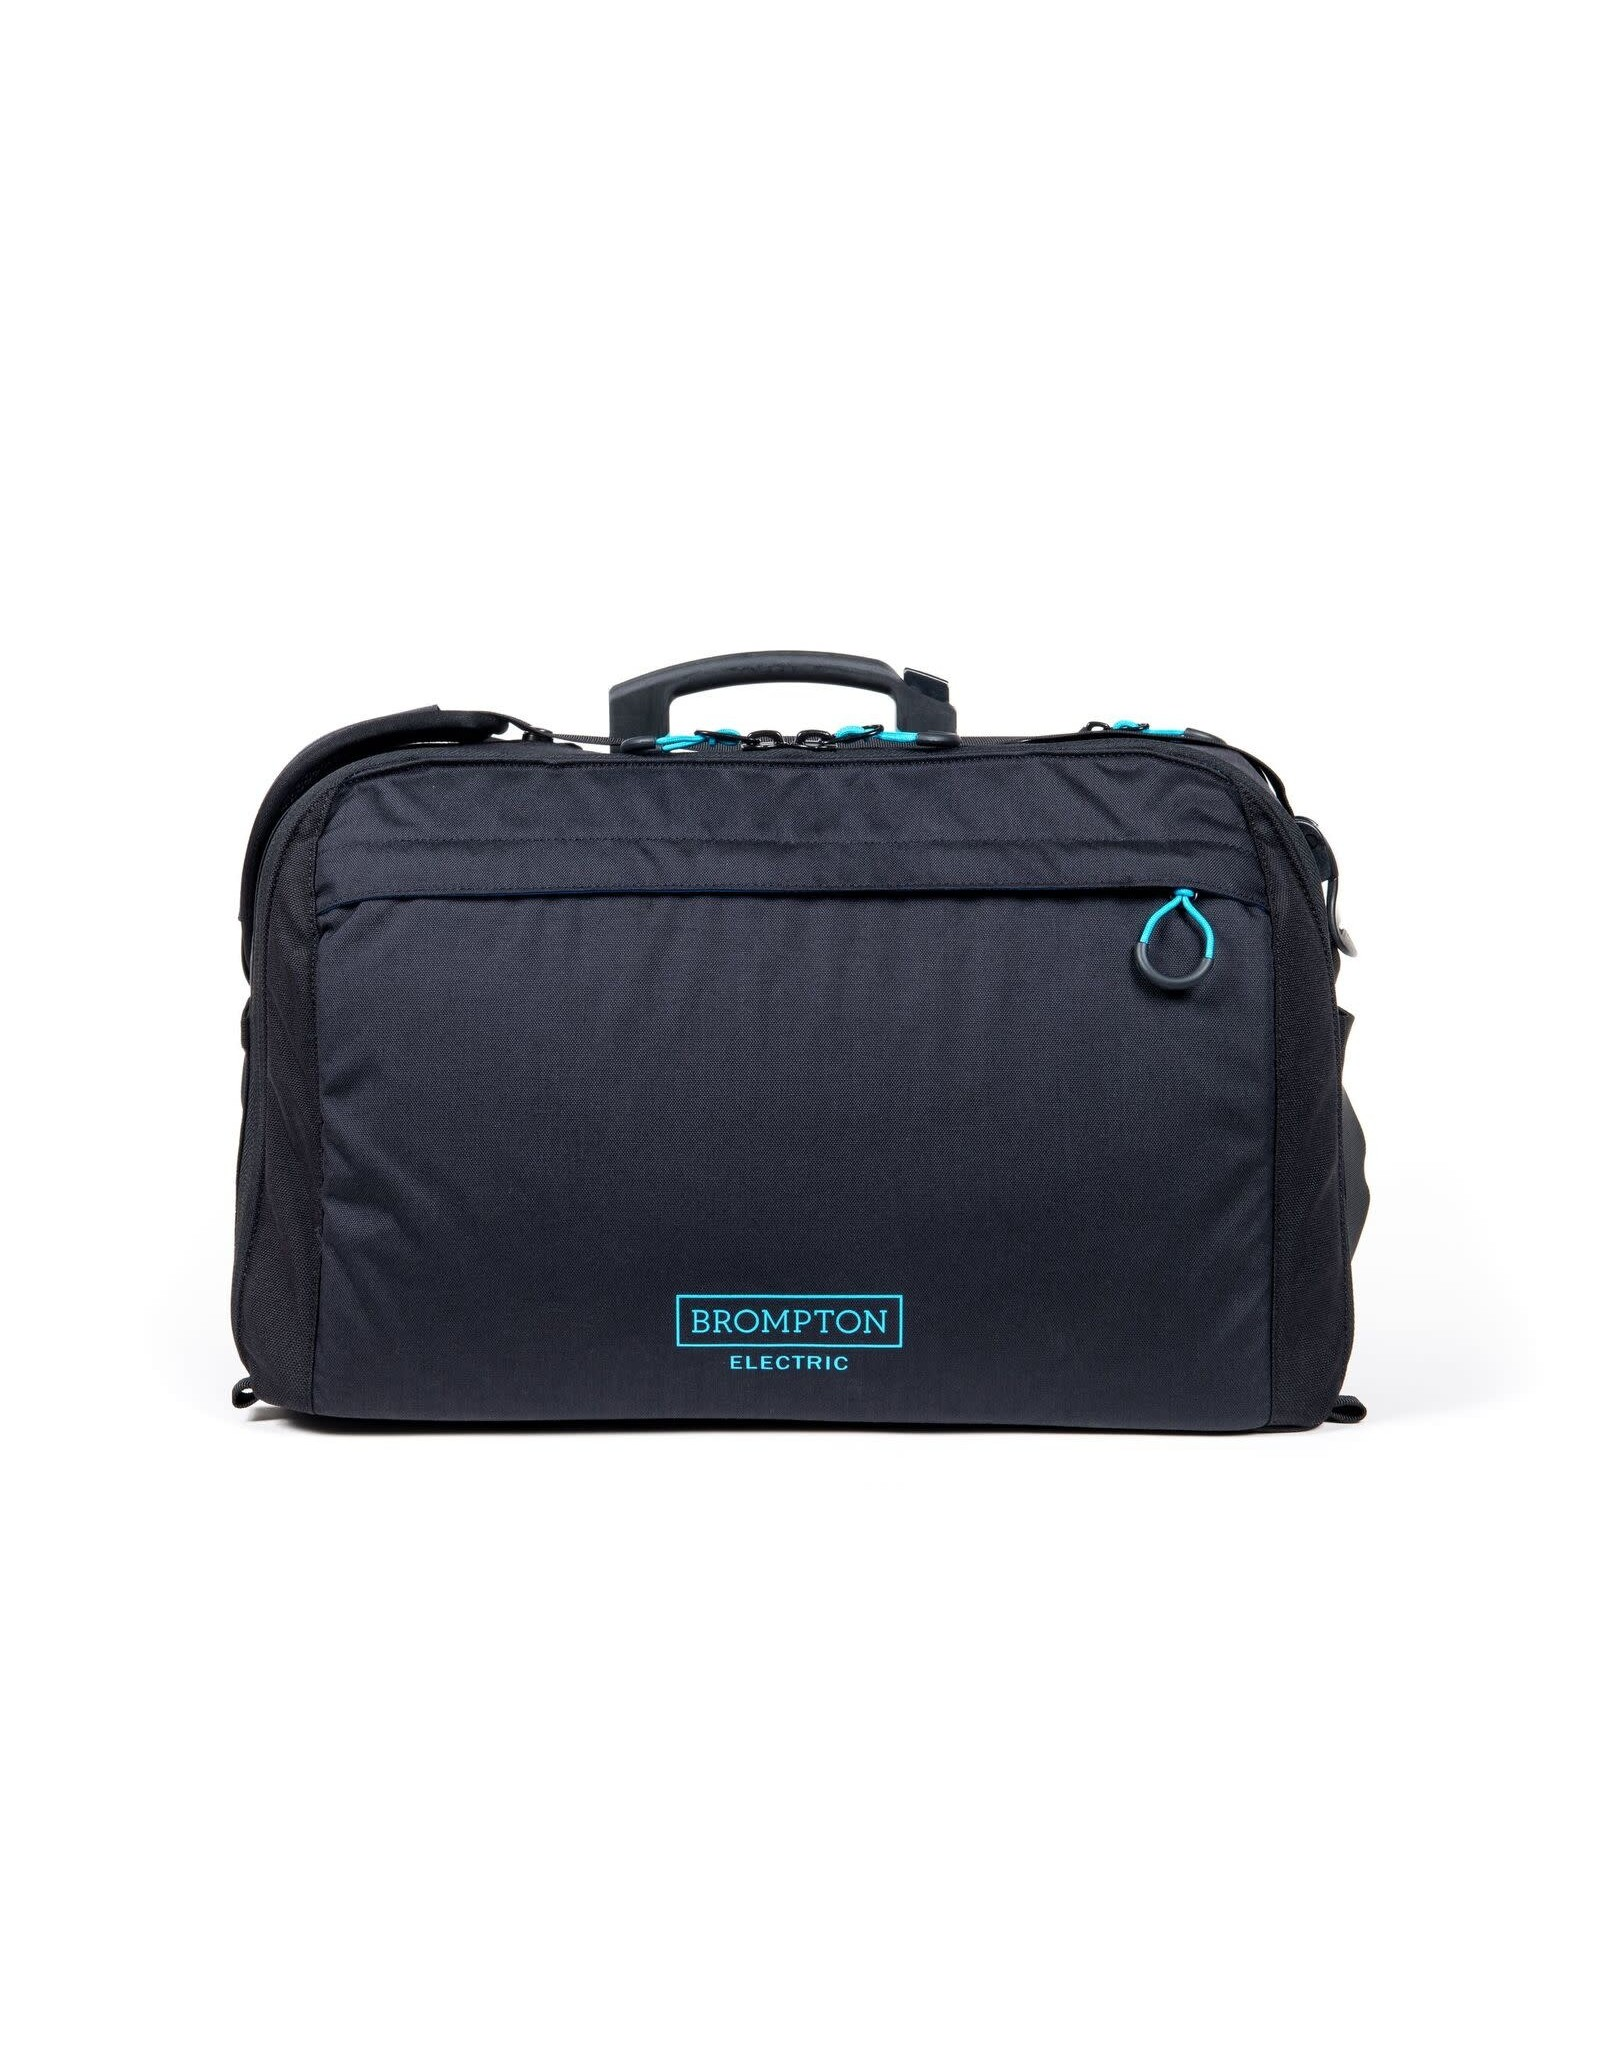 Brompton Large Bag For Electric With Frame